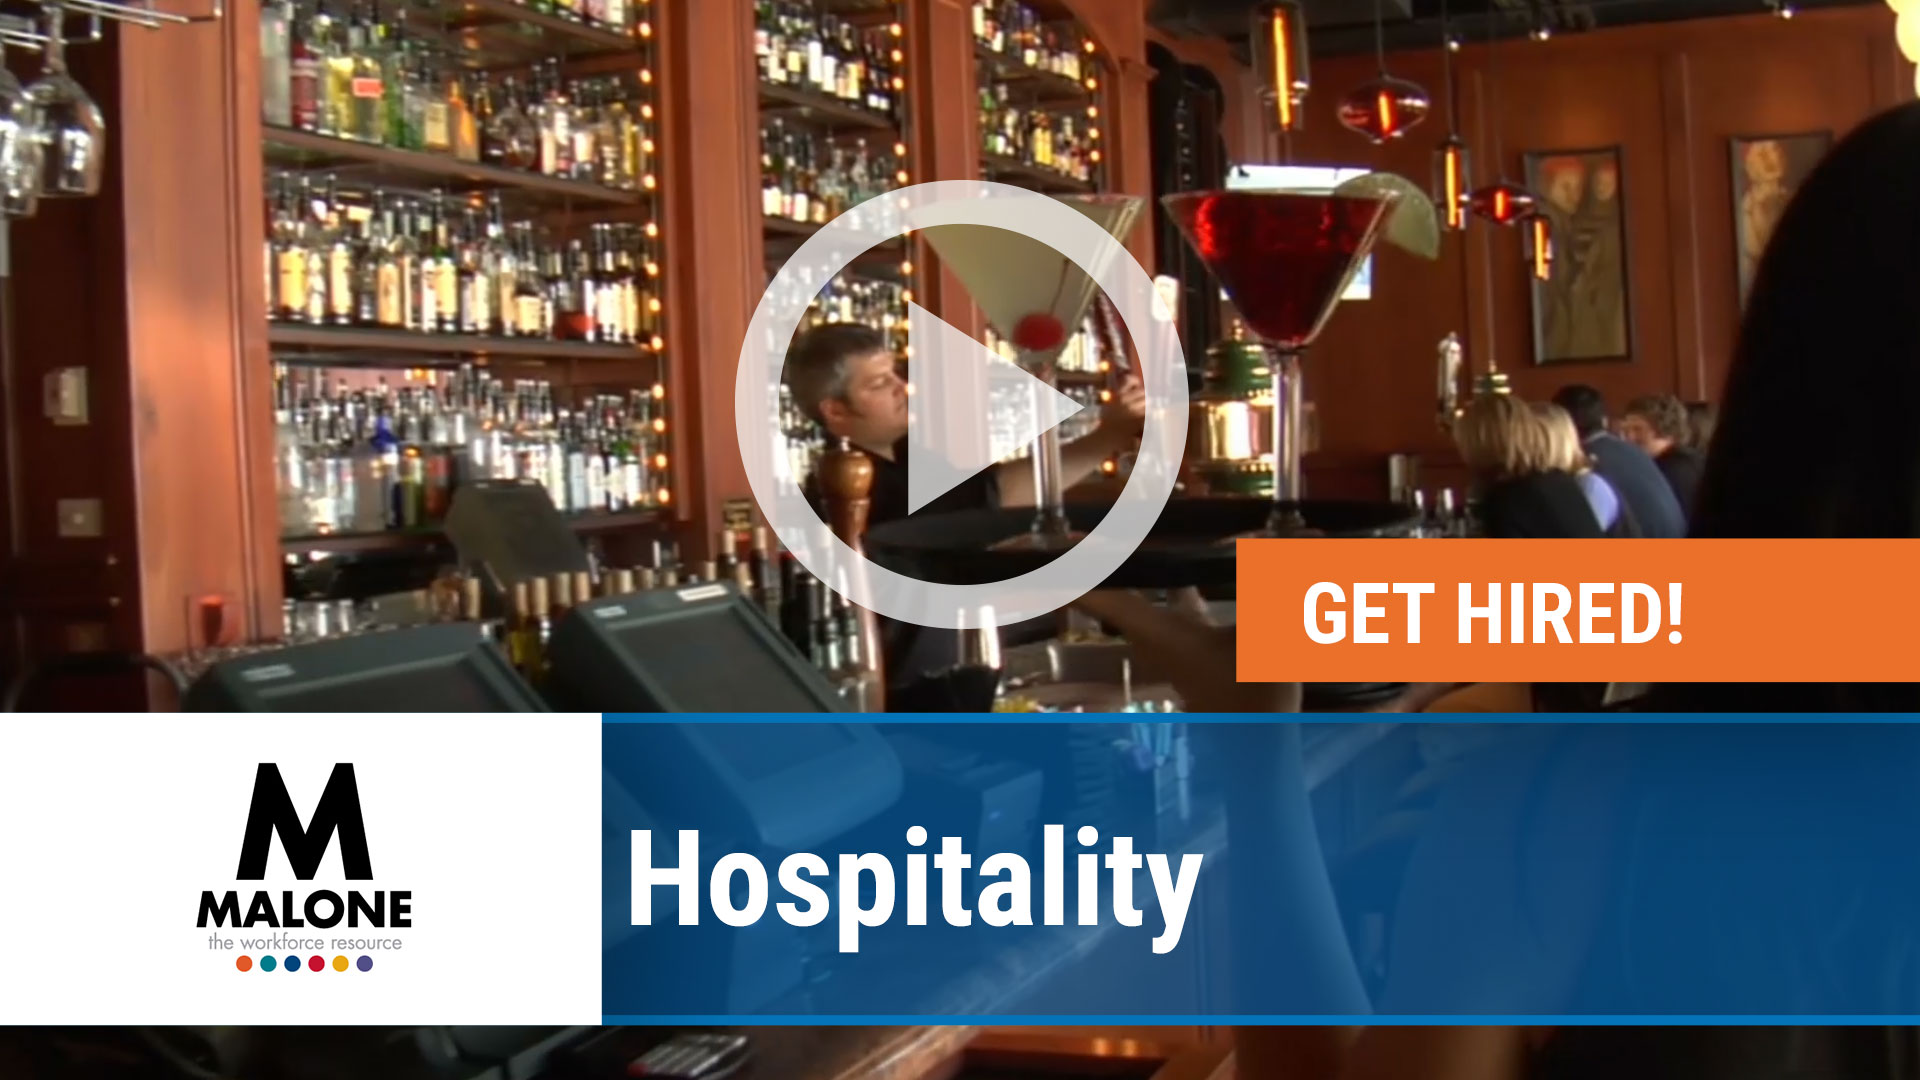 Watch our careers video for available job opening Hospitality Jobs in Multiple Locations